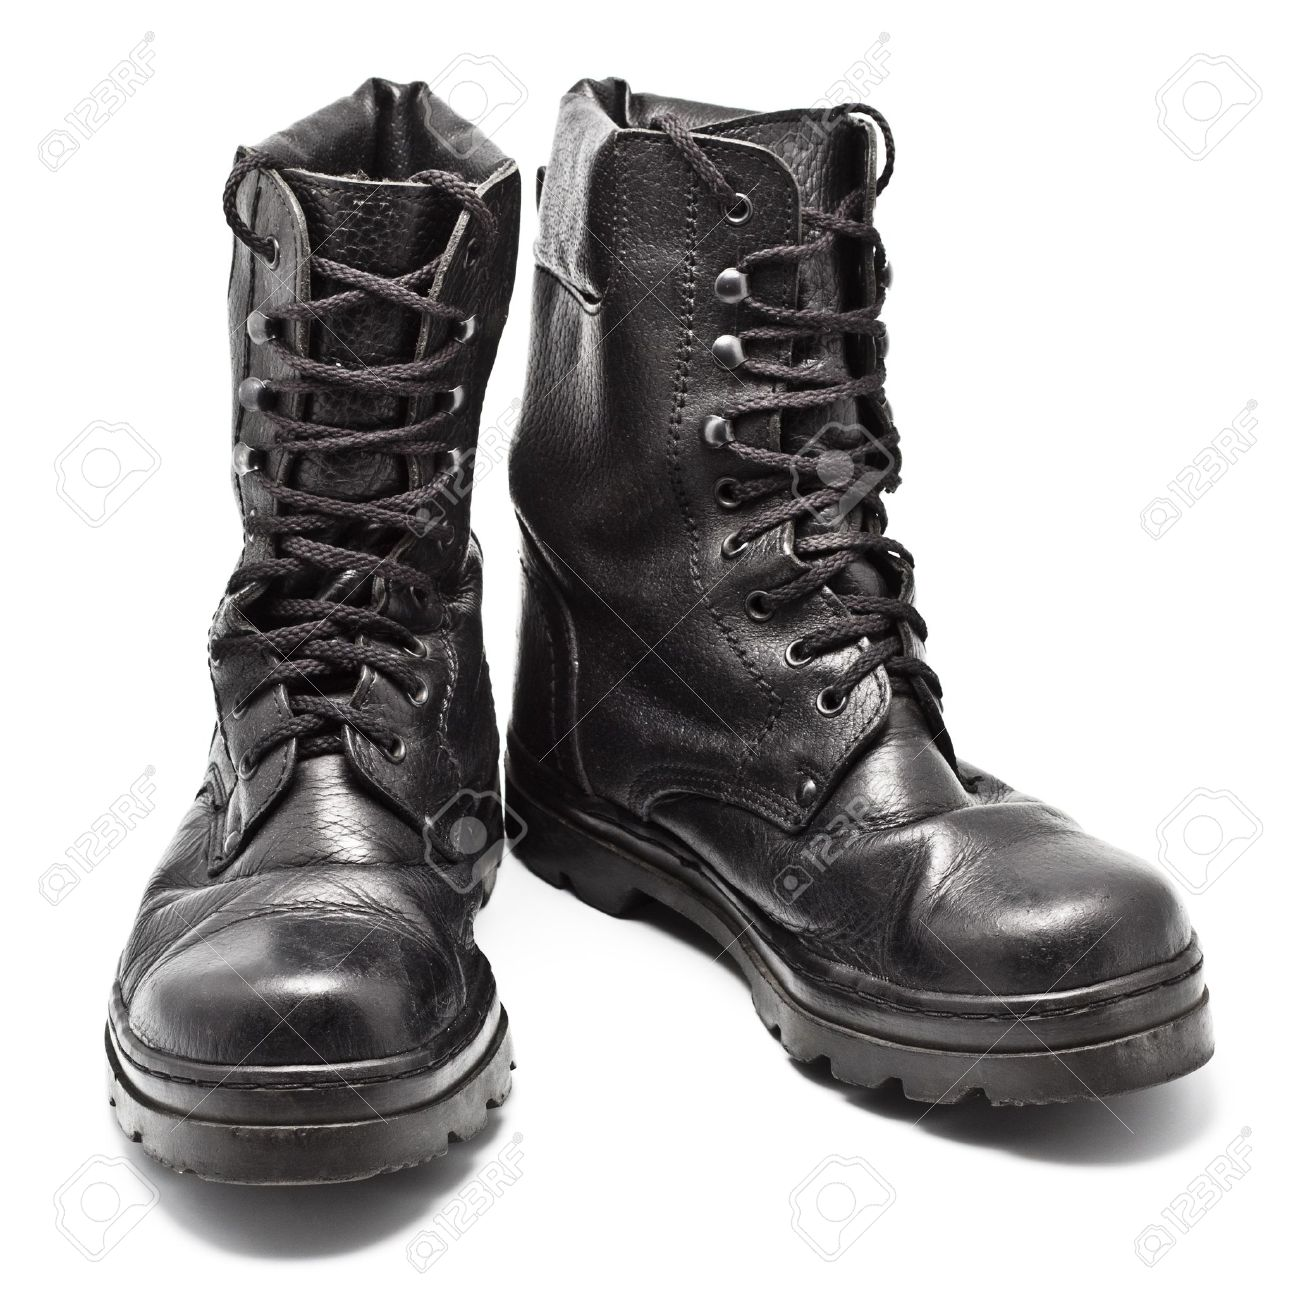 military boots: black leather army boots isolated on white CQXKGFS